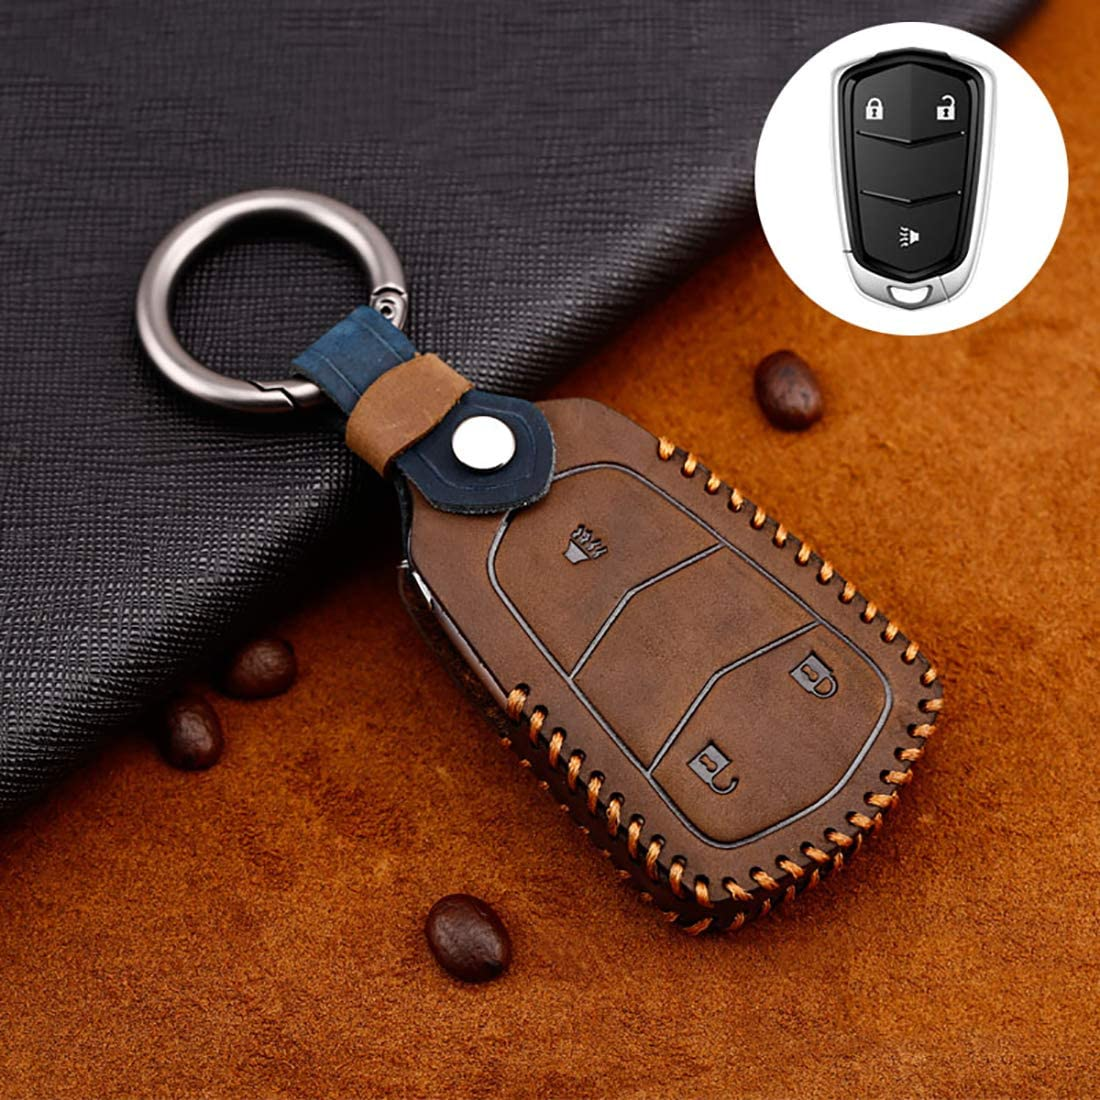 ontto 3-Button Key Fob Cover for Cadillac Keycase Holder Skin Premium Leather Brown